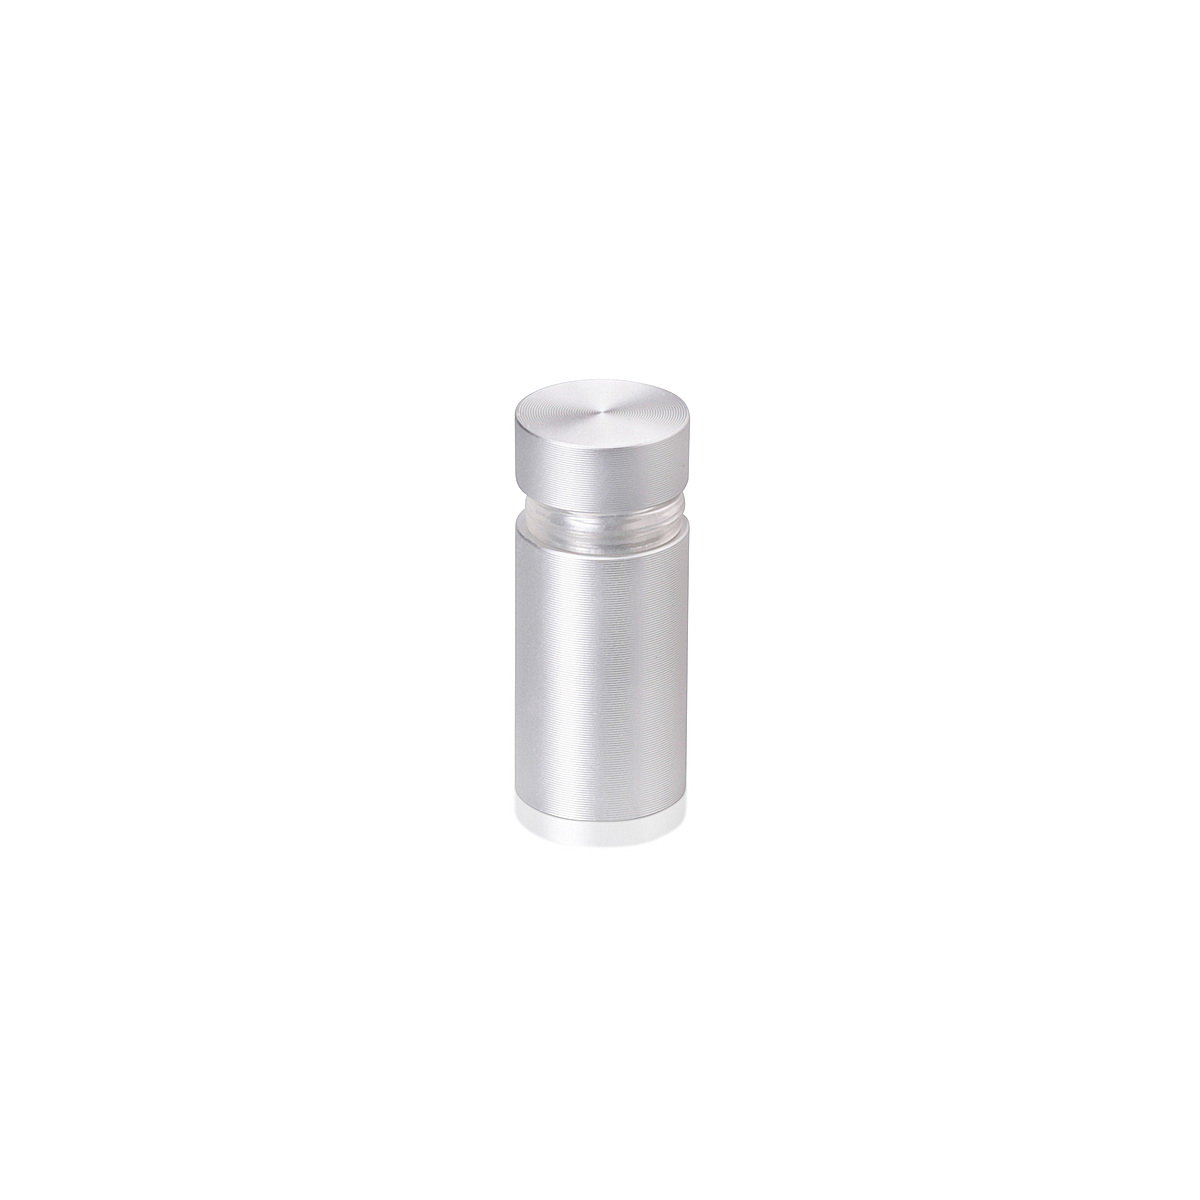 Tamper Proof Aluminum Flat Head Standoffs, Diameter: 1/2'', Standoff: 3/4'', Clear Anodized Finish